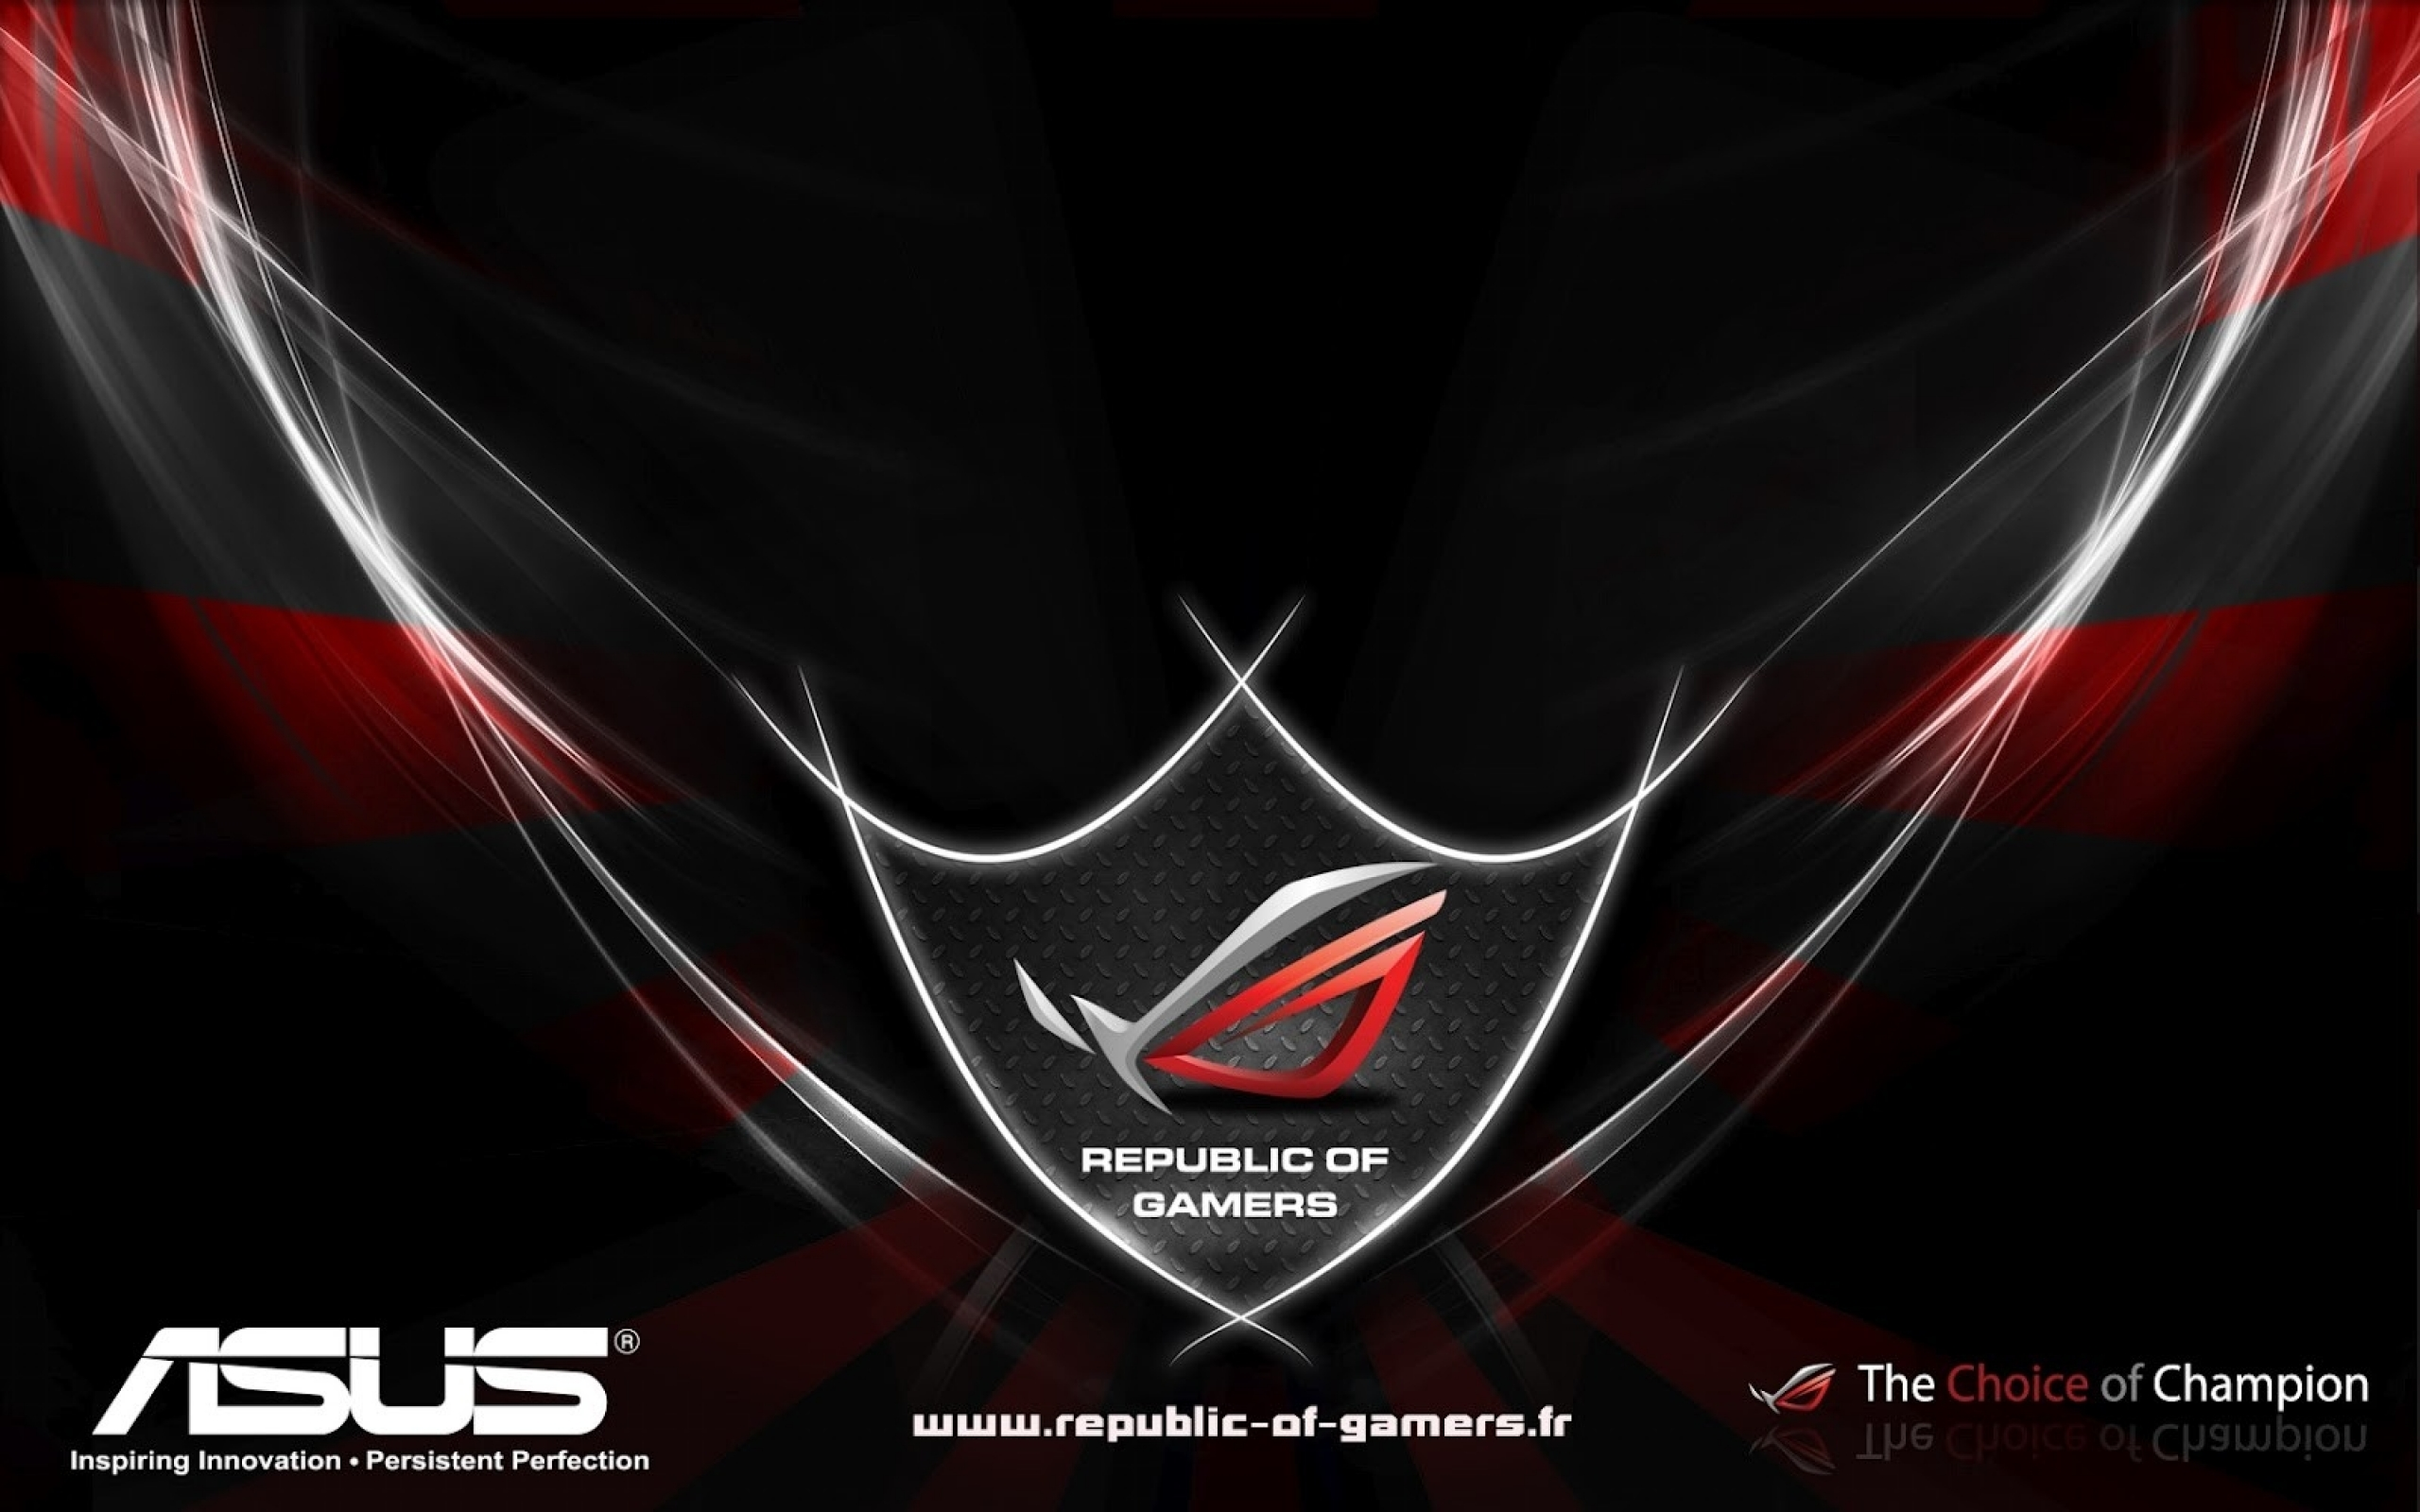 asus rog republic of gamers 1600x1000 wallpaper Art HD Wallpaper 2560x1600